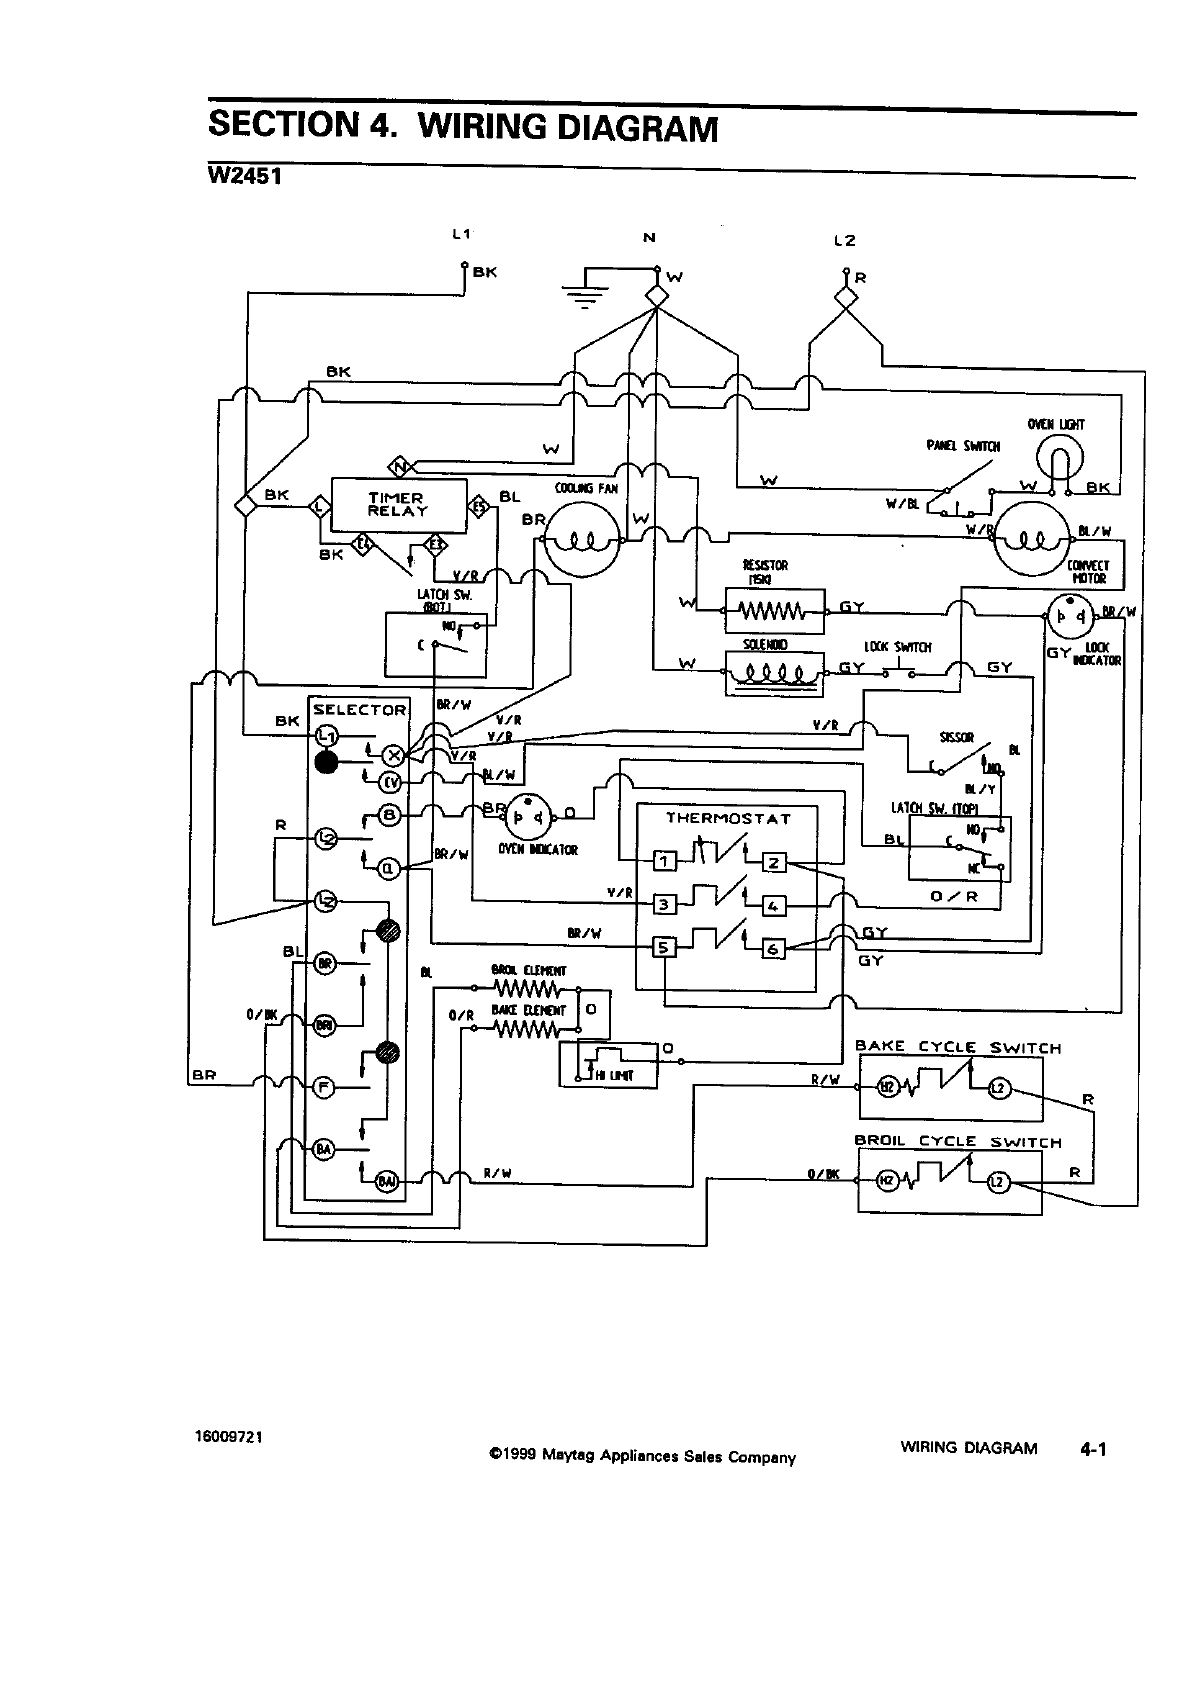 52b2f415 78fa 4259 88c0 be210120d02a bg21 page 33 of jenn air oven ww30430p user guide manualsonline com Basic Electrical Wiring Diagrams at virtualis.co